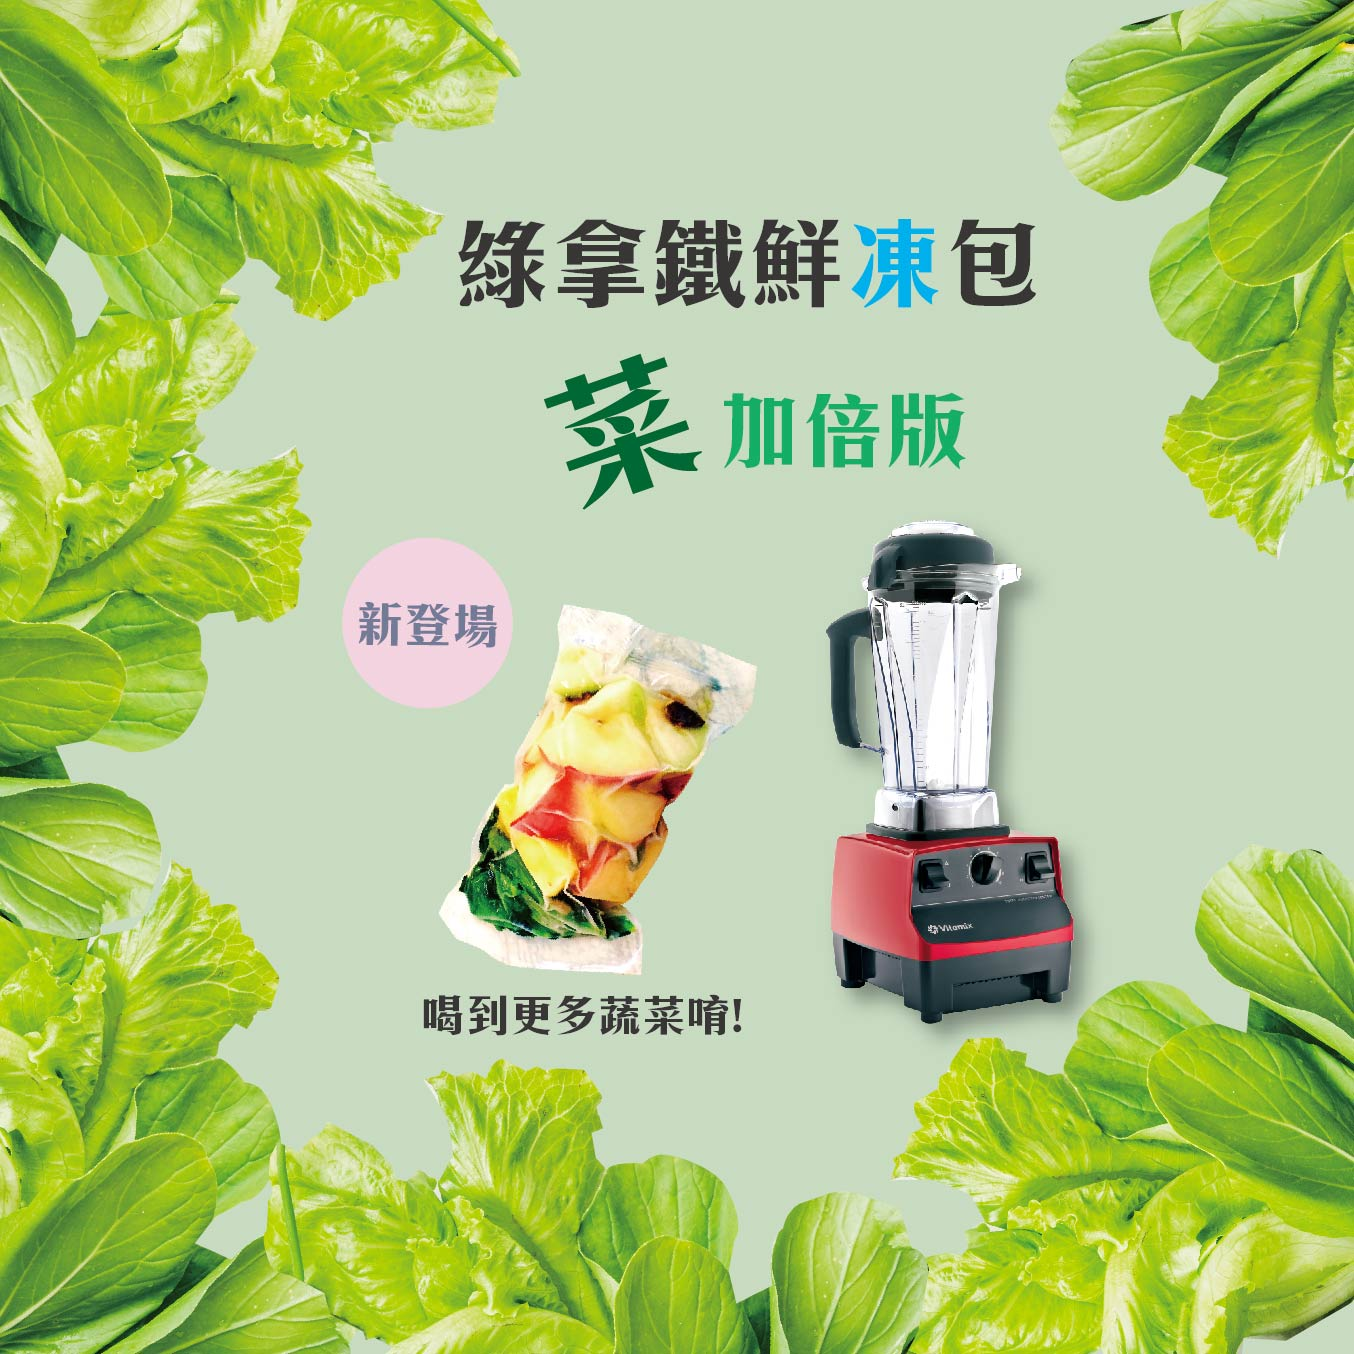 news_green_smoothies_latte_VGBOOM_vitamix_tnc_S30_dietu_healthy_菜加倍版_新登場